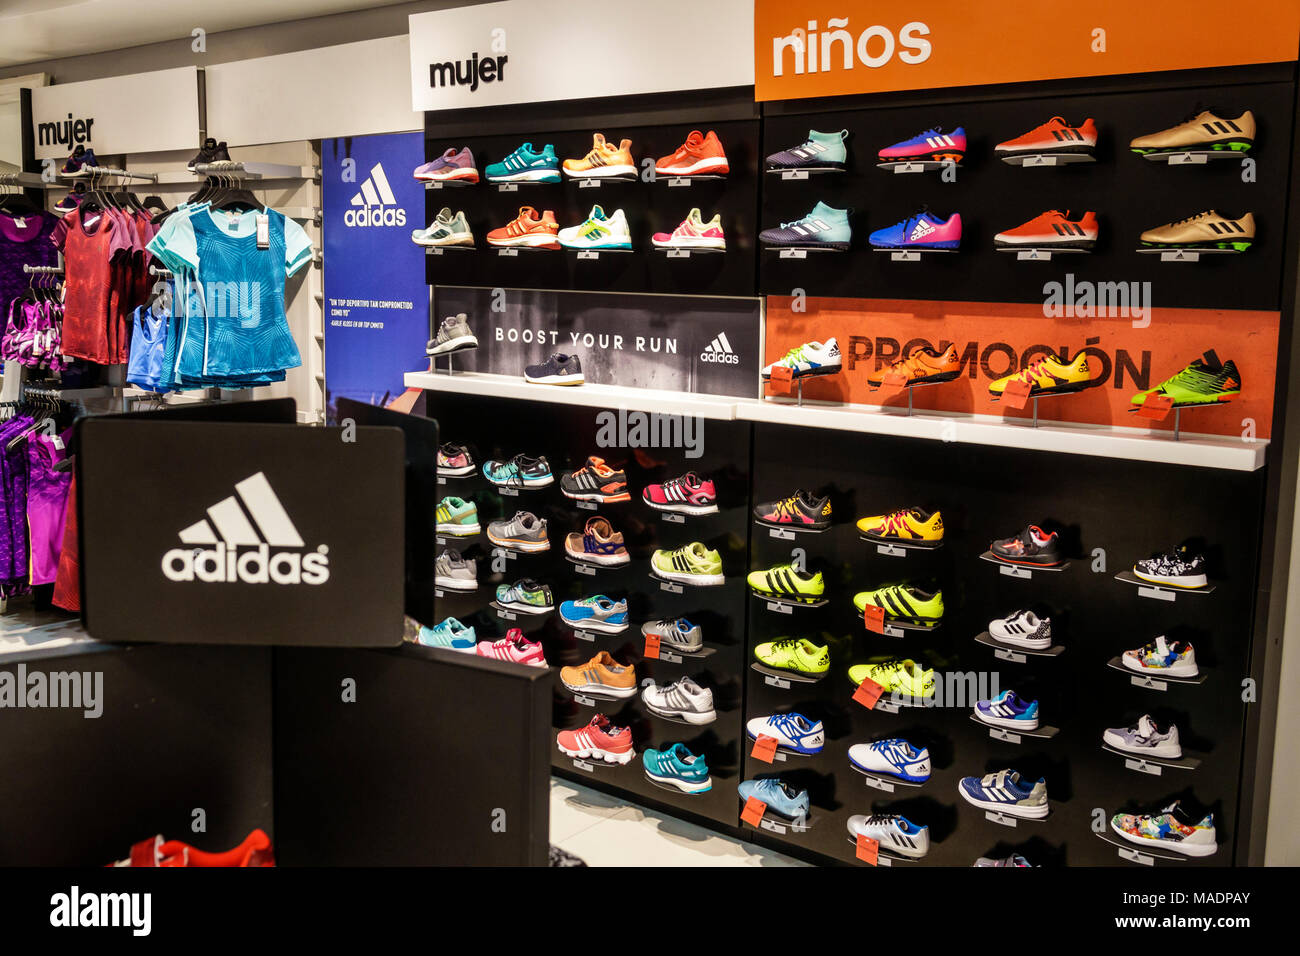 Abuelos visitantes Chicle Masculinidad  Argentina, Buenos Aires, Recoleta mall, Adidas, brand store, retailer,  athletic sportswear, sneakers, running shoes, women's, children's, Spanish  lang Stock Photo - Alamy